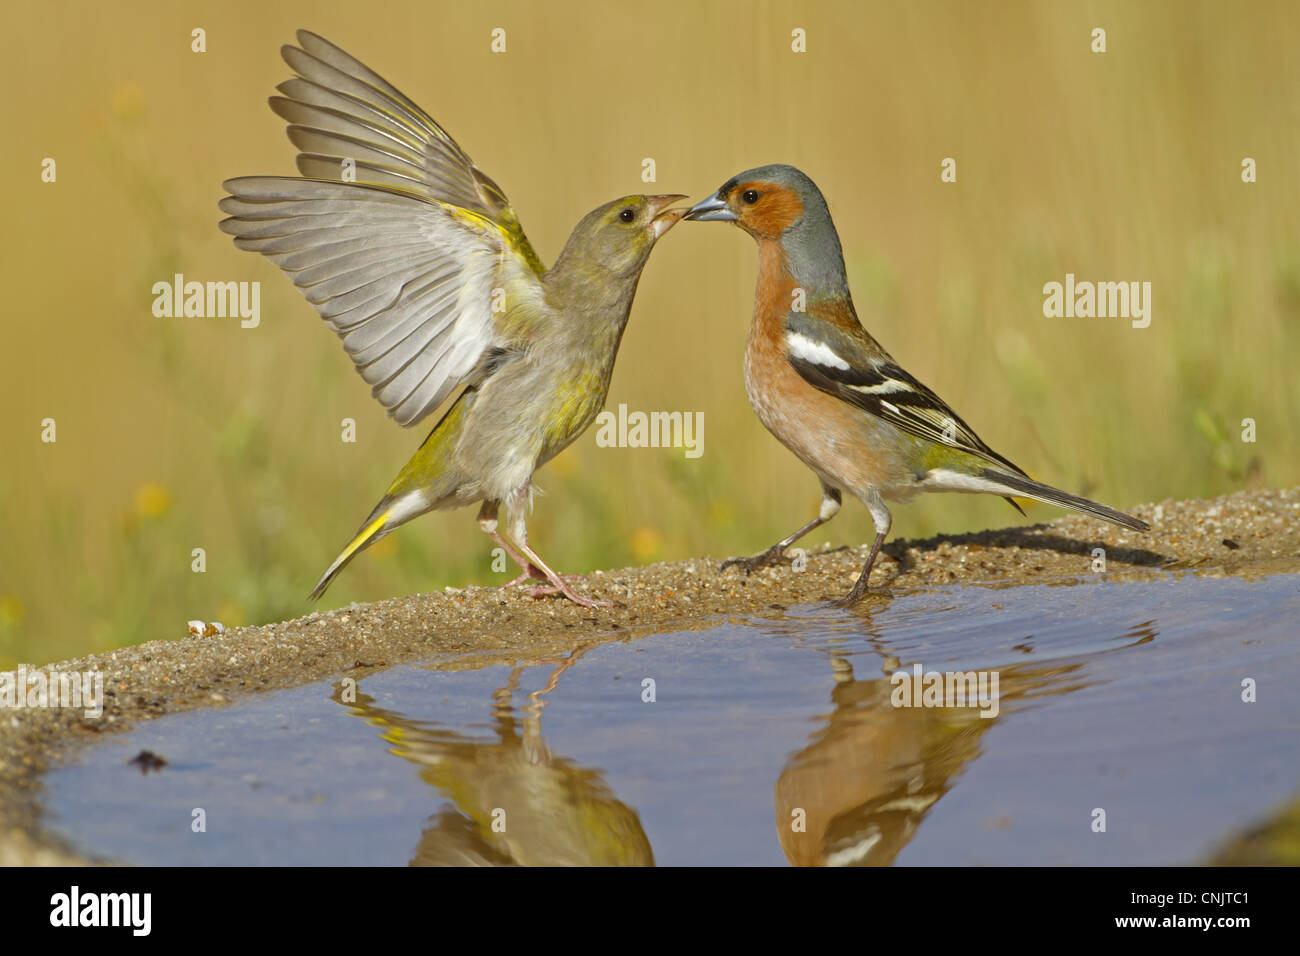 European Greenfinch (Carduelis chloris) and Chaffinch (Fringilla coelebs) adults, disputing at drinking pool, Spain, - Stock Image